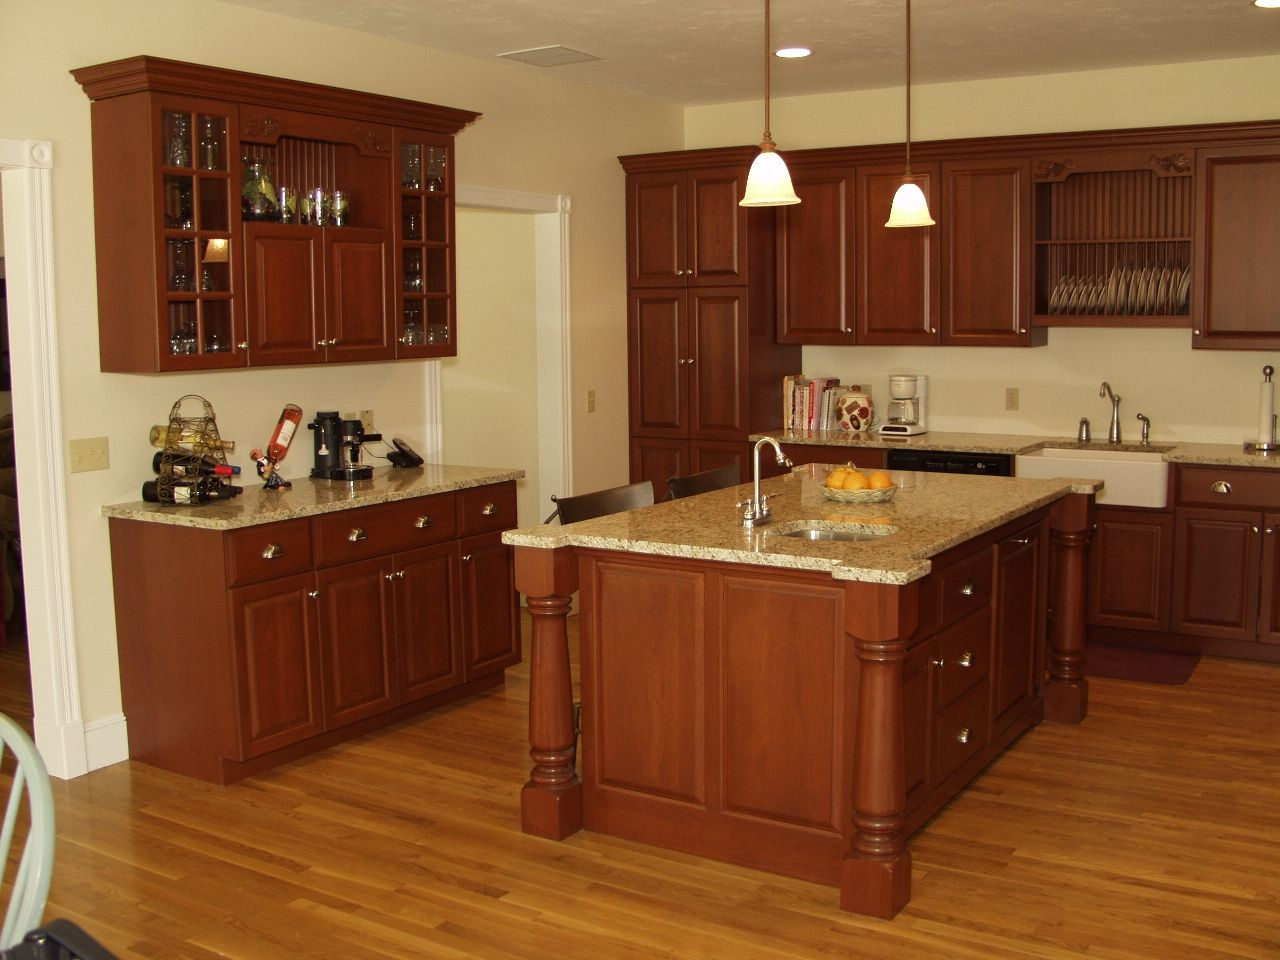 Quartz Kitchen Countertop Kitchenquartz Countertops With Oak Cabinets Cabinets With White